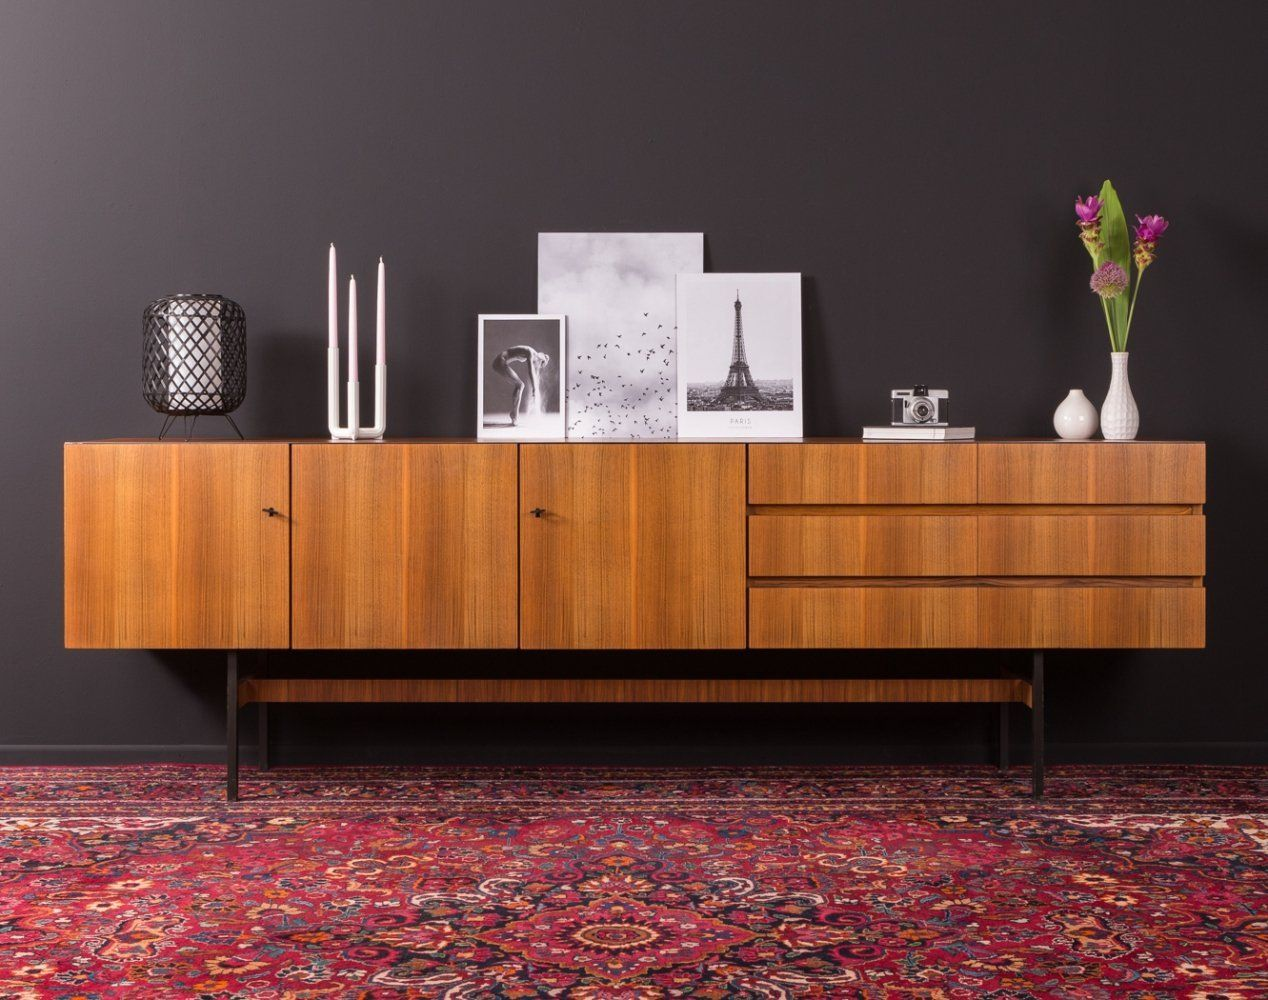 For Sale Walnut Sideboard By Musterring Germany 1960s Sideboard Walnut Sideboard Sideboard Storage